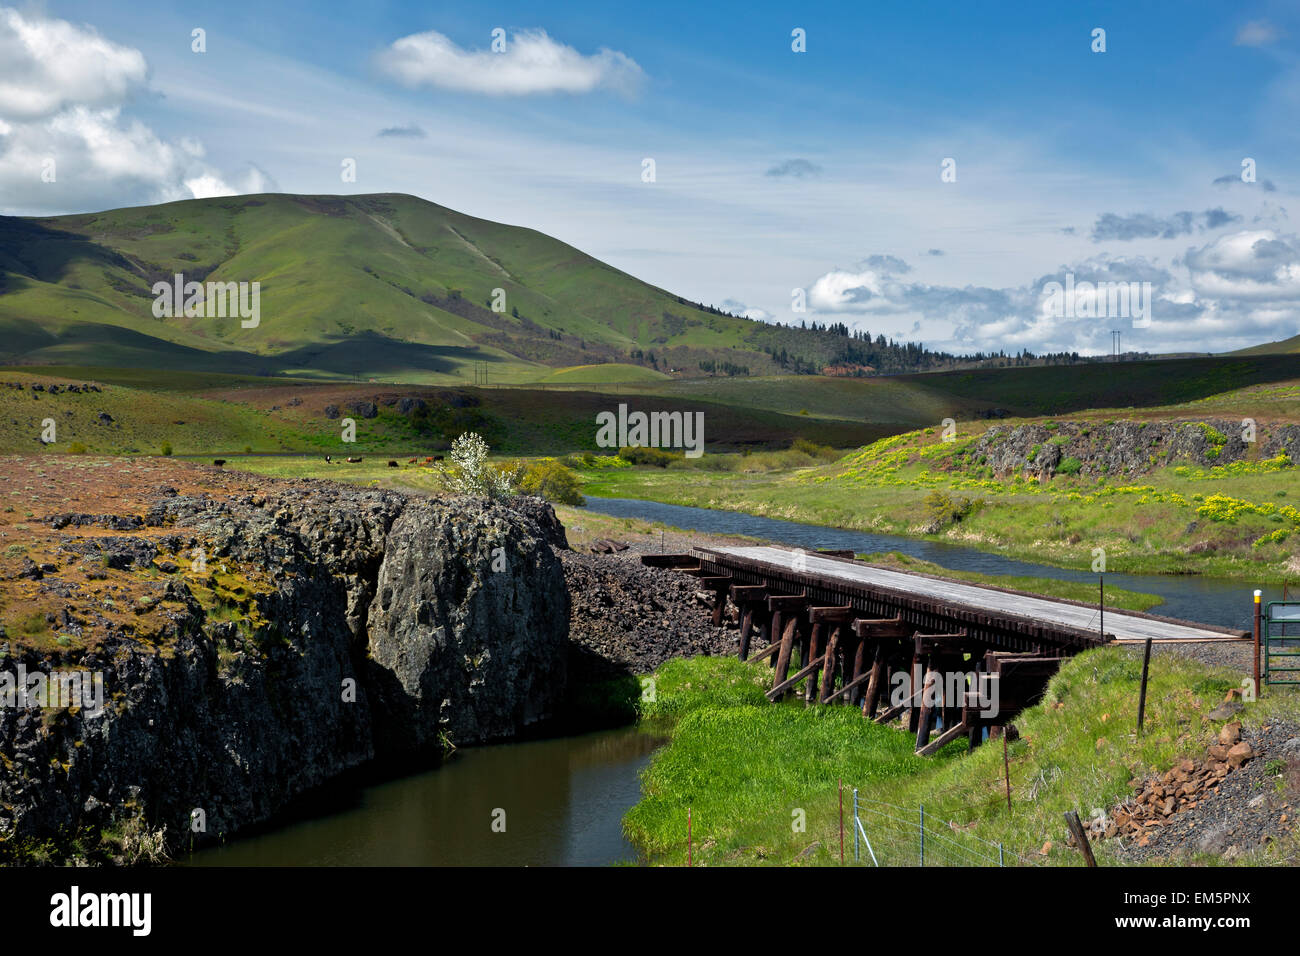 WA10317-00...WASHINGTON - Swale Creek at the Harms Road Trail Access for the Klickitat Trail. - Stock Image